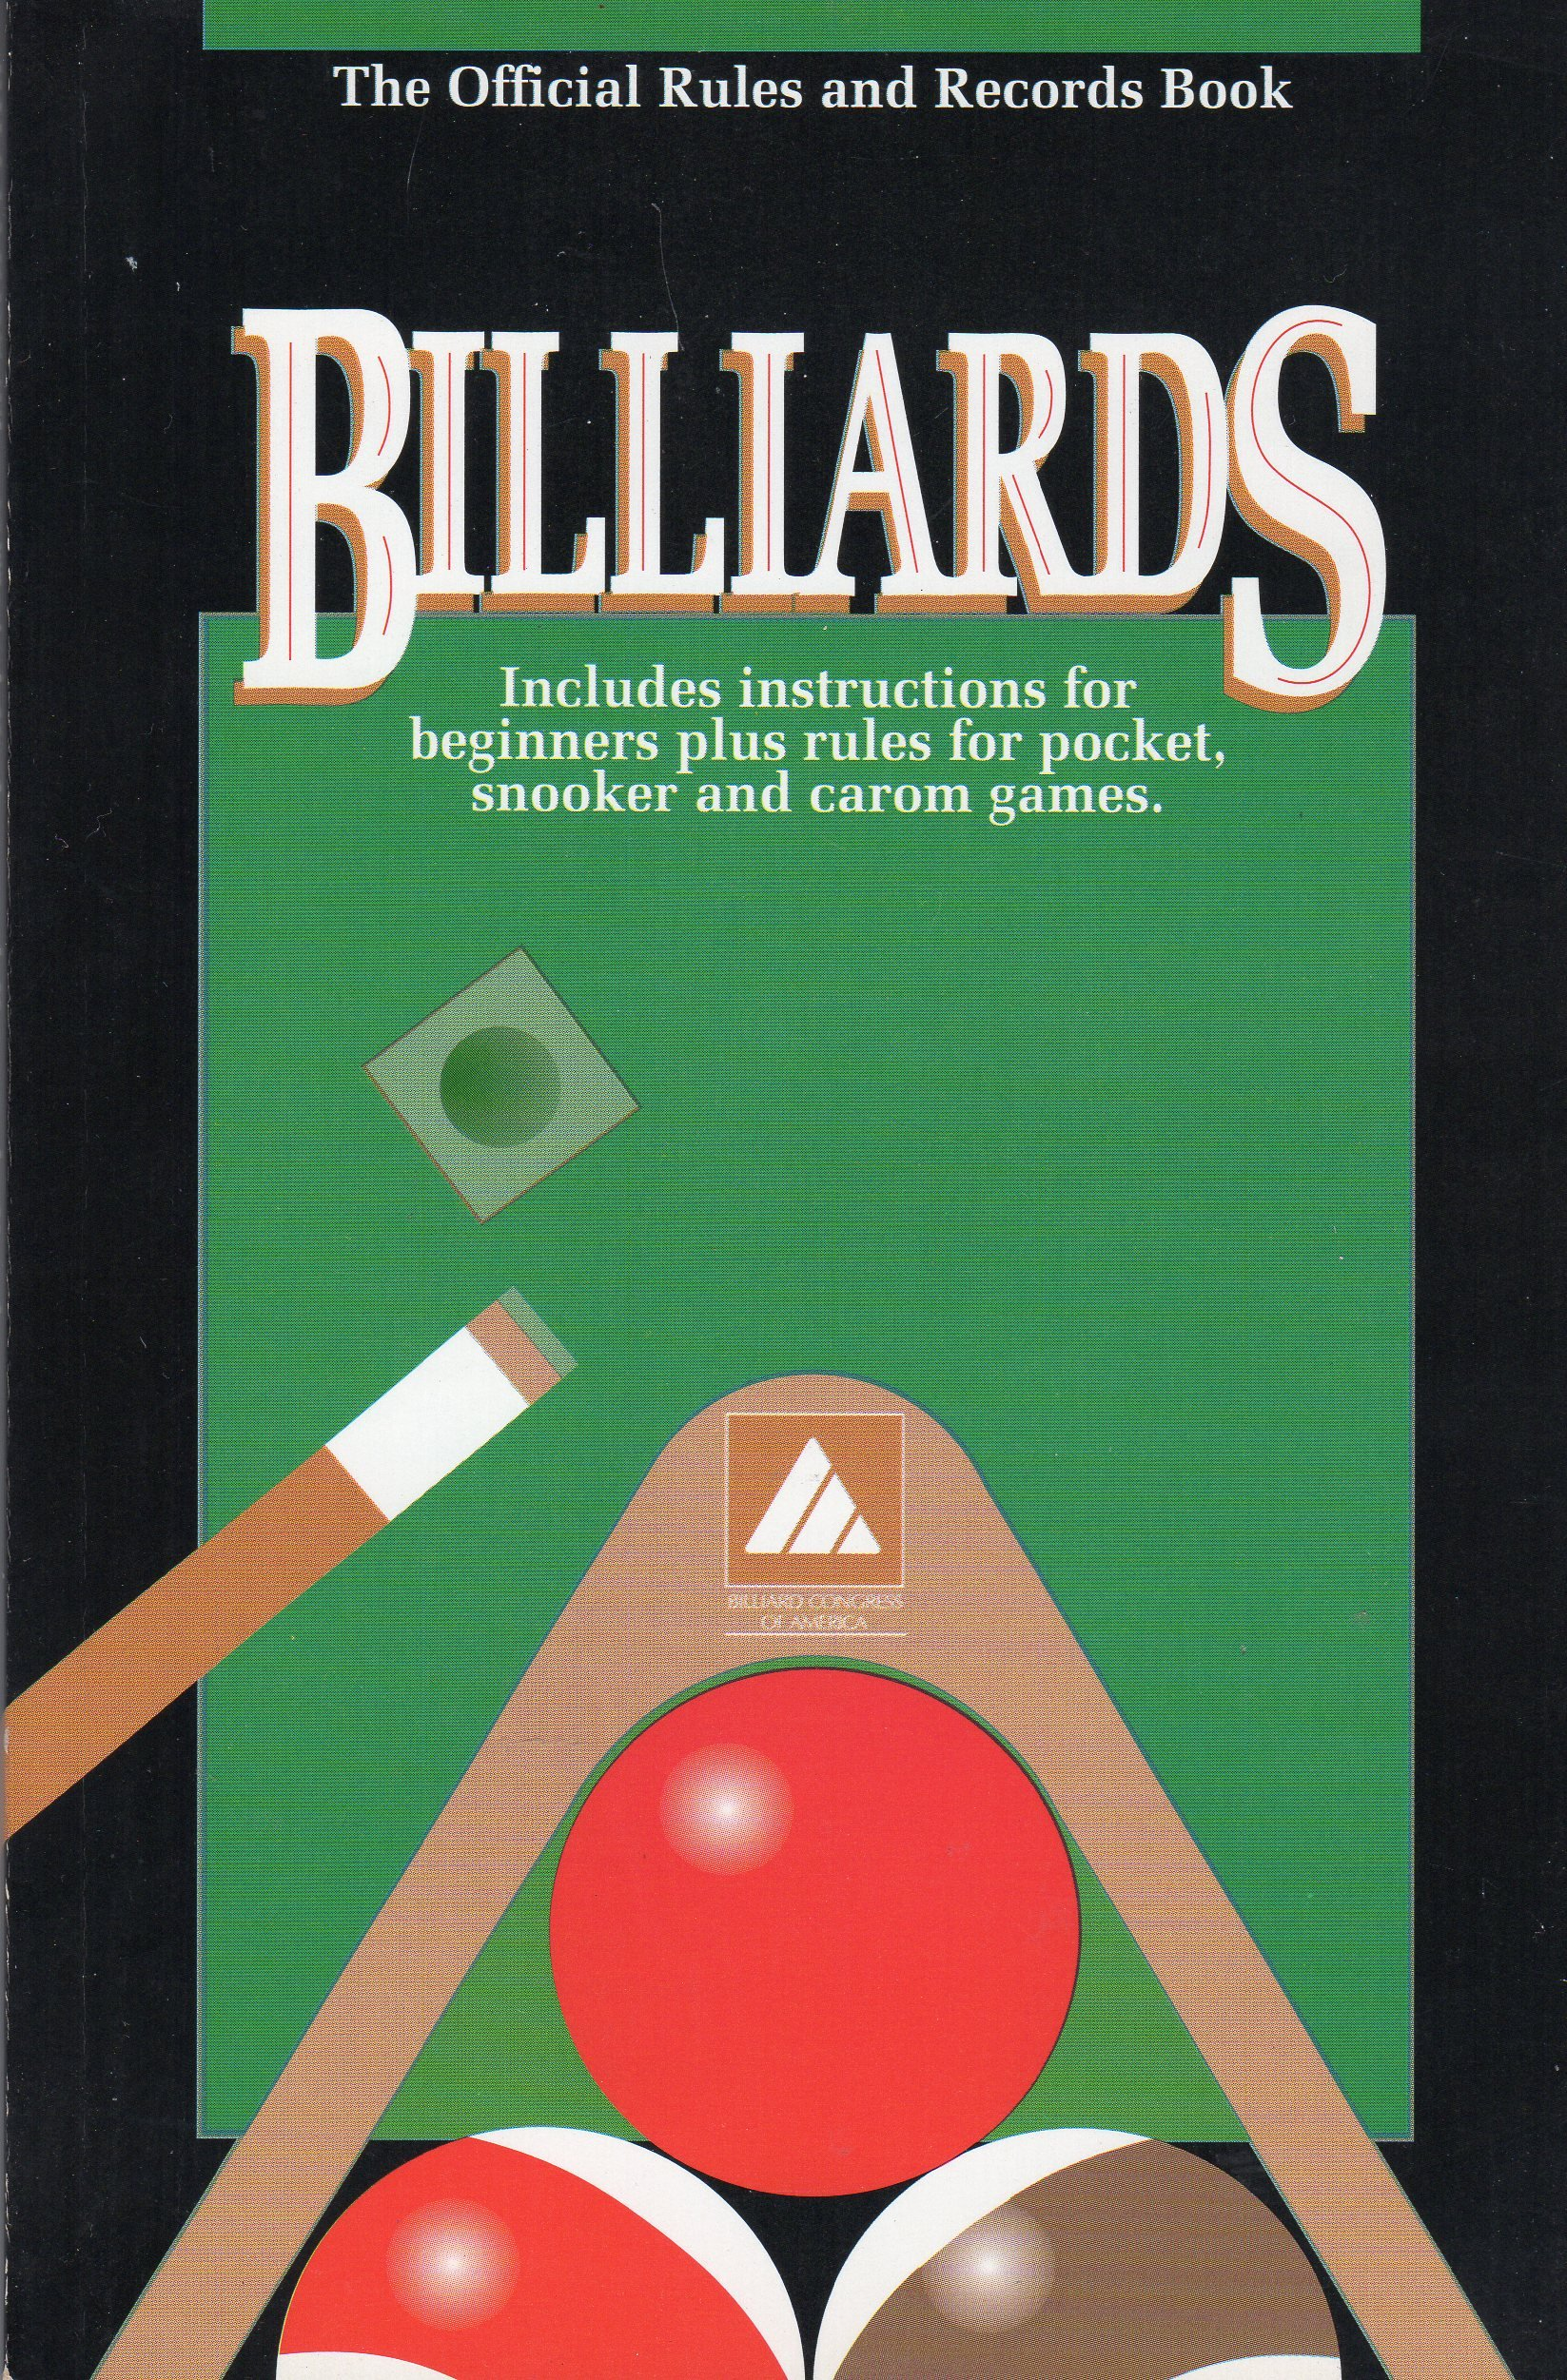 Billairds the Official Rules and Records Book 1993, Rules, BCA